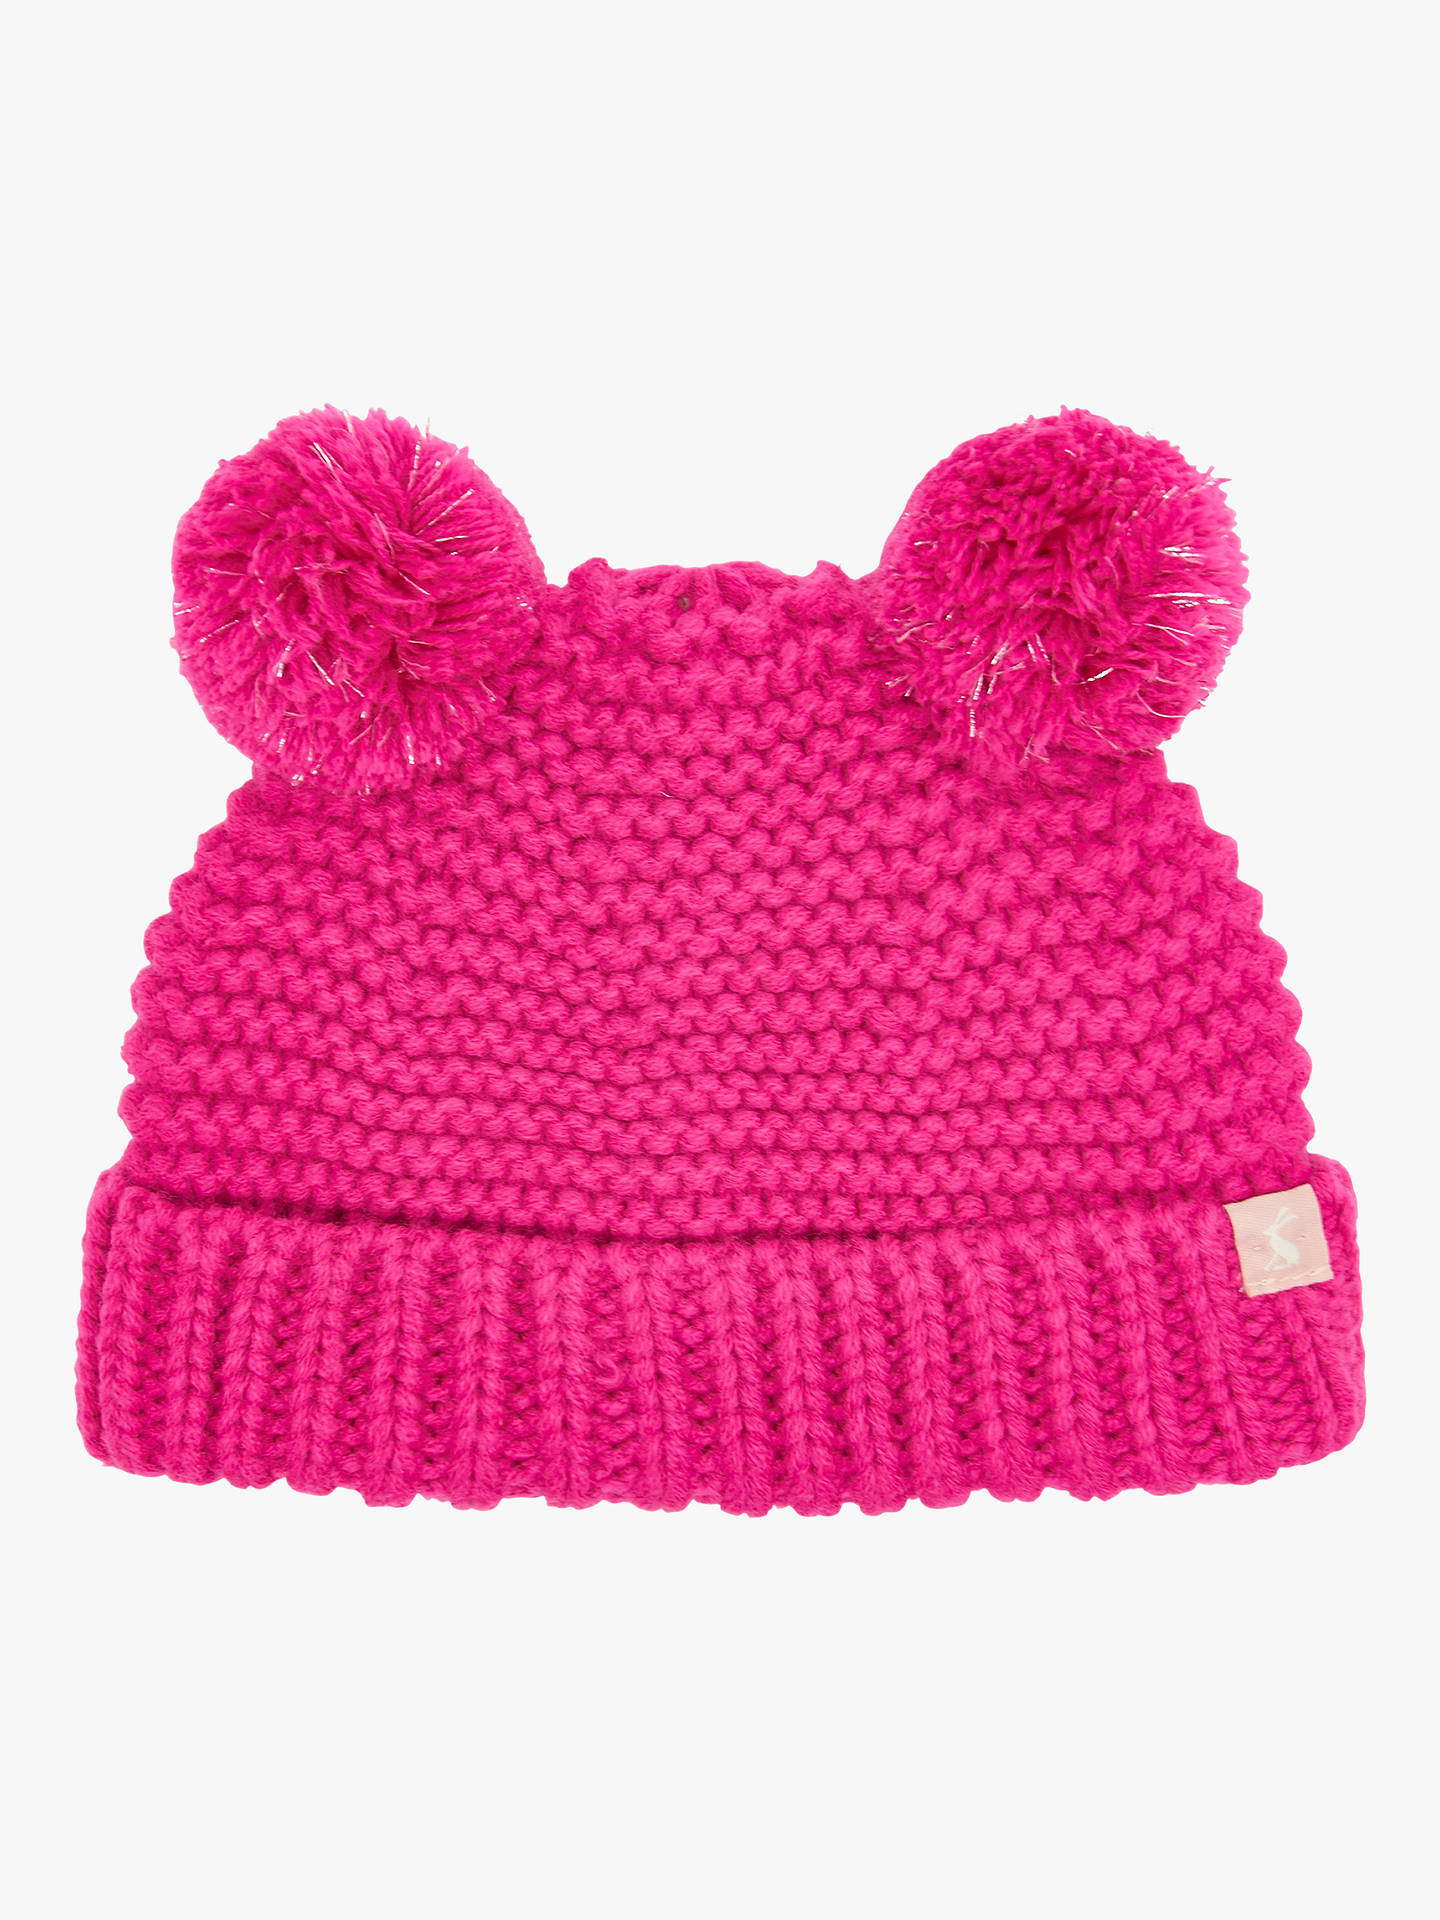 BuyBaby Joule Knitted Pom Pom Hat, Bright Pink, 0-6 months Online at johnlewis.com